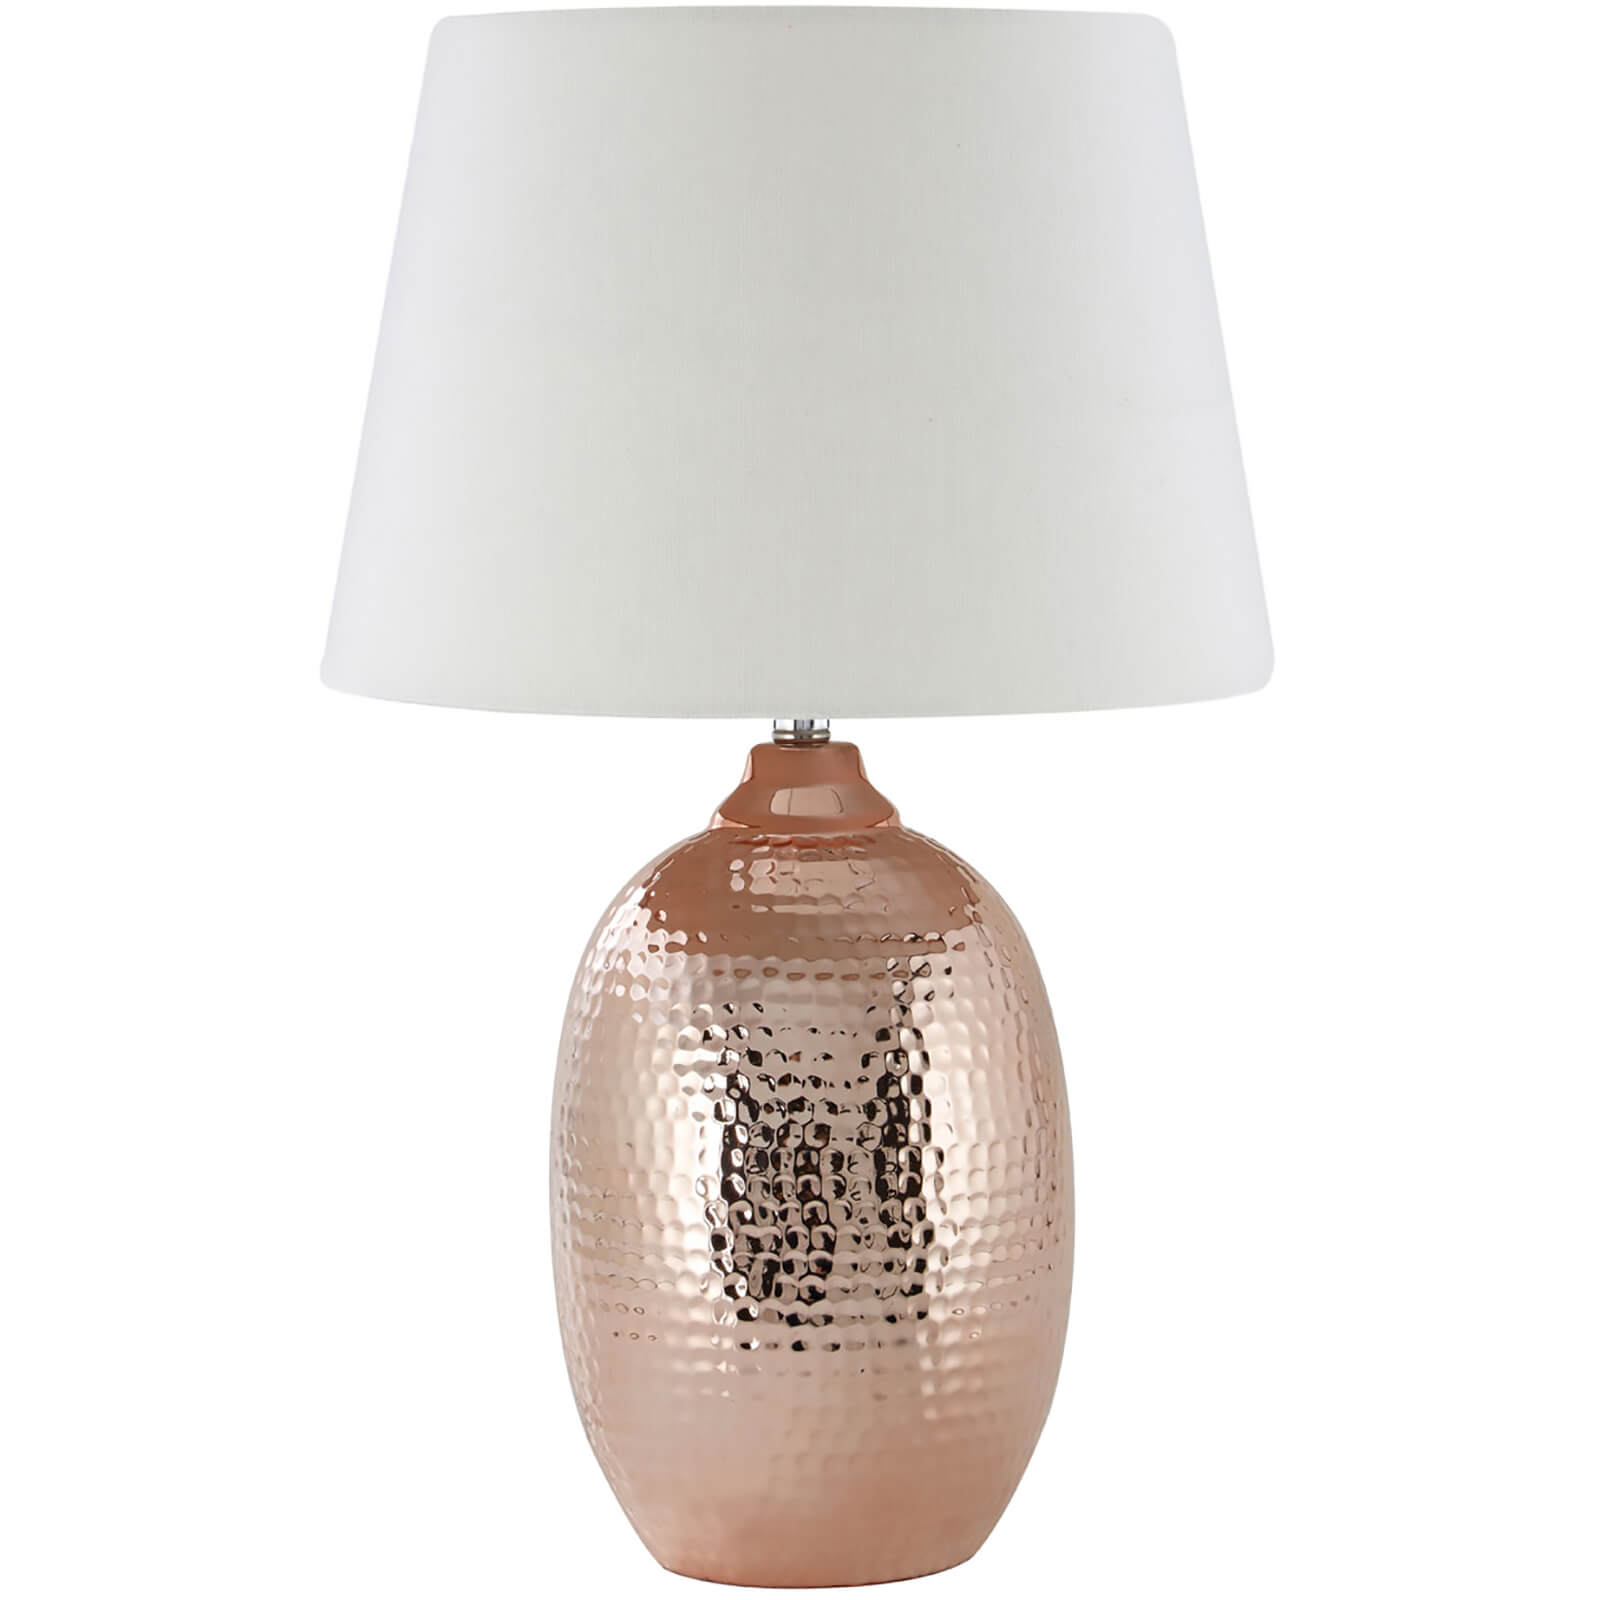 Fifty Five South Jane Table Lamp - Copper/Ivory